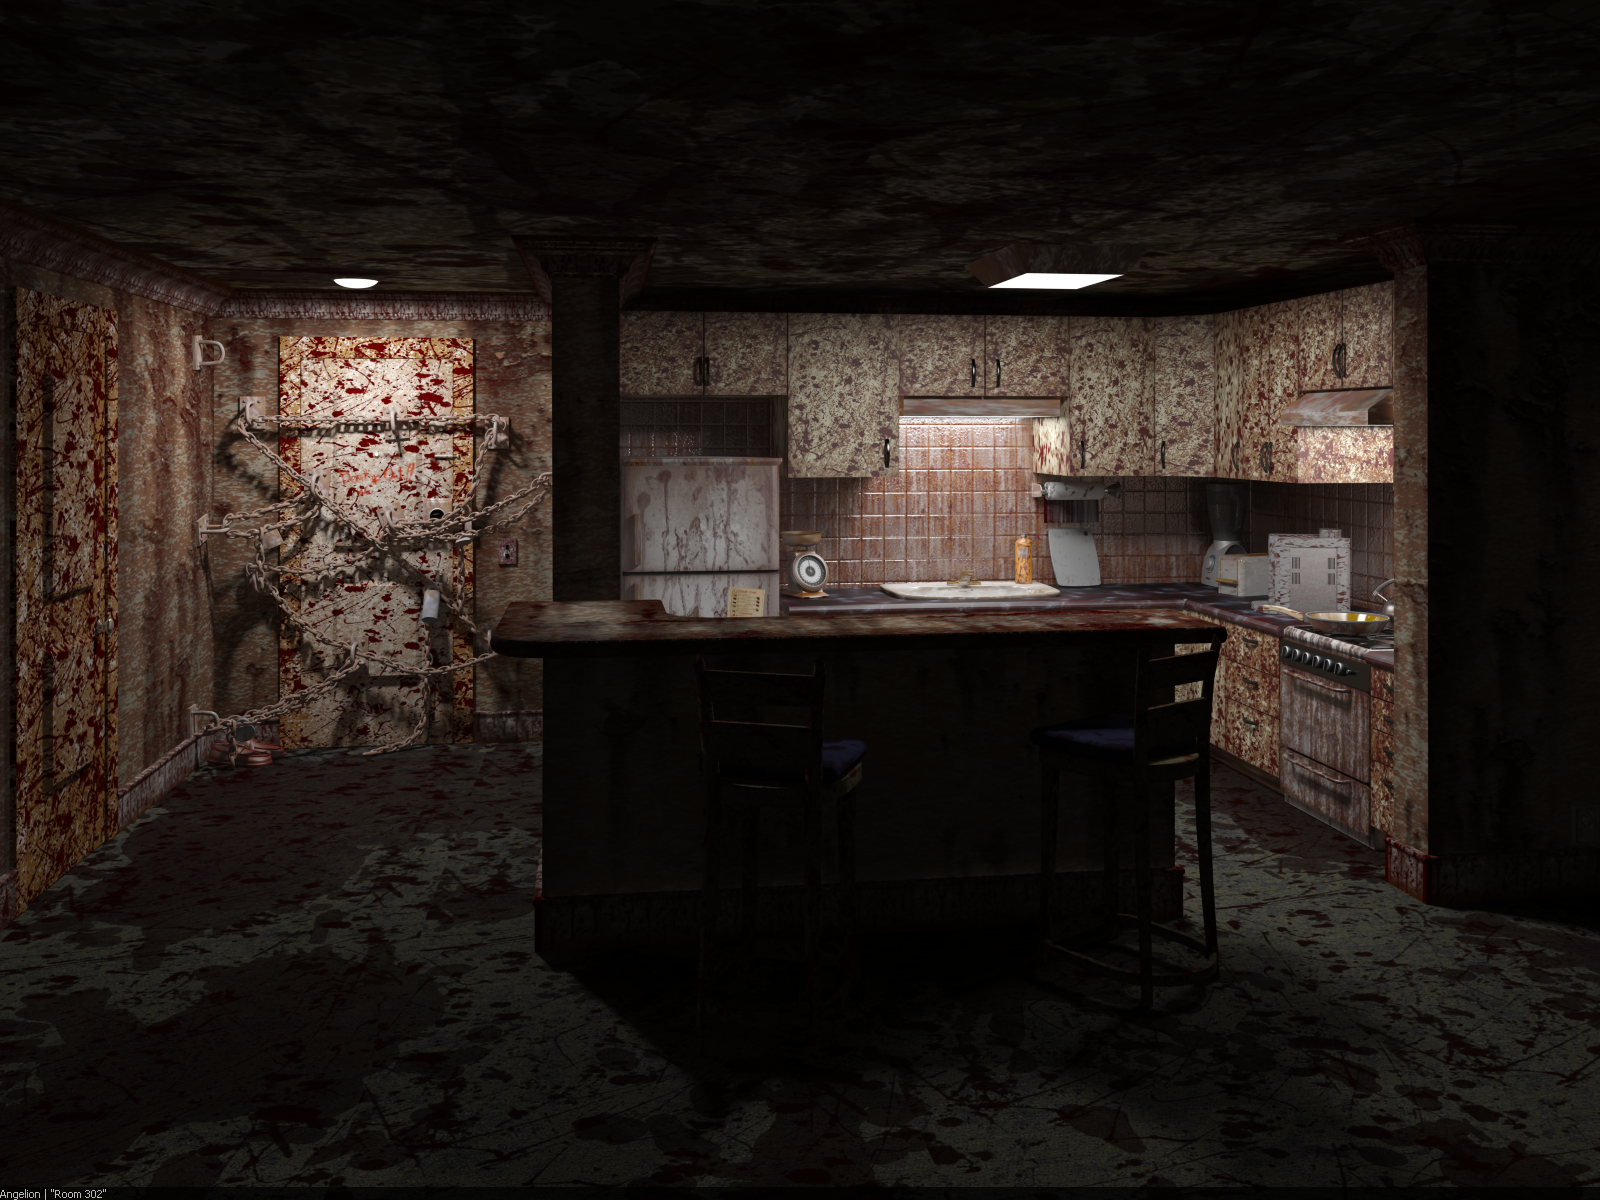 Silent Hill 4 Room 302 By Angelion1987 On Deviantart